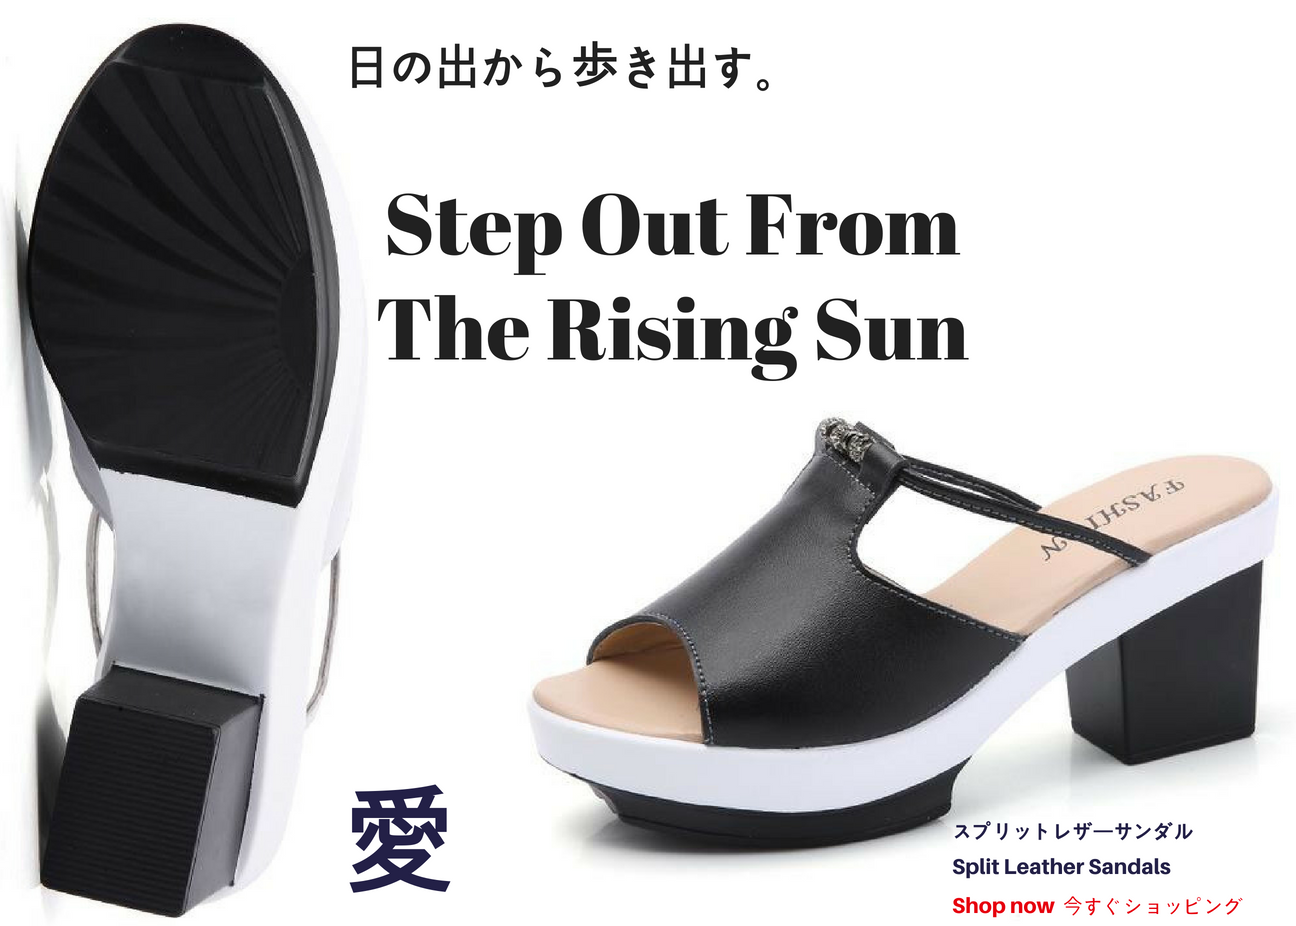 miTeigi Step Out From The Rising Sun Open Toe Platform Sandals